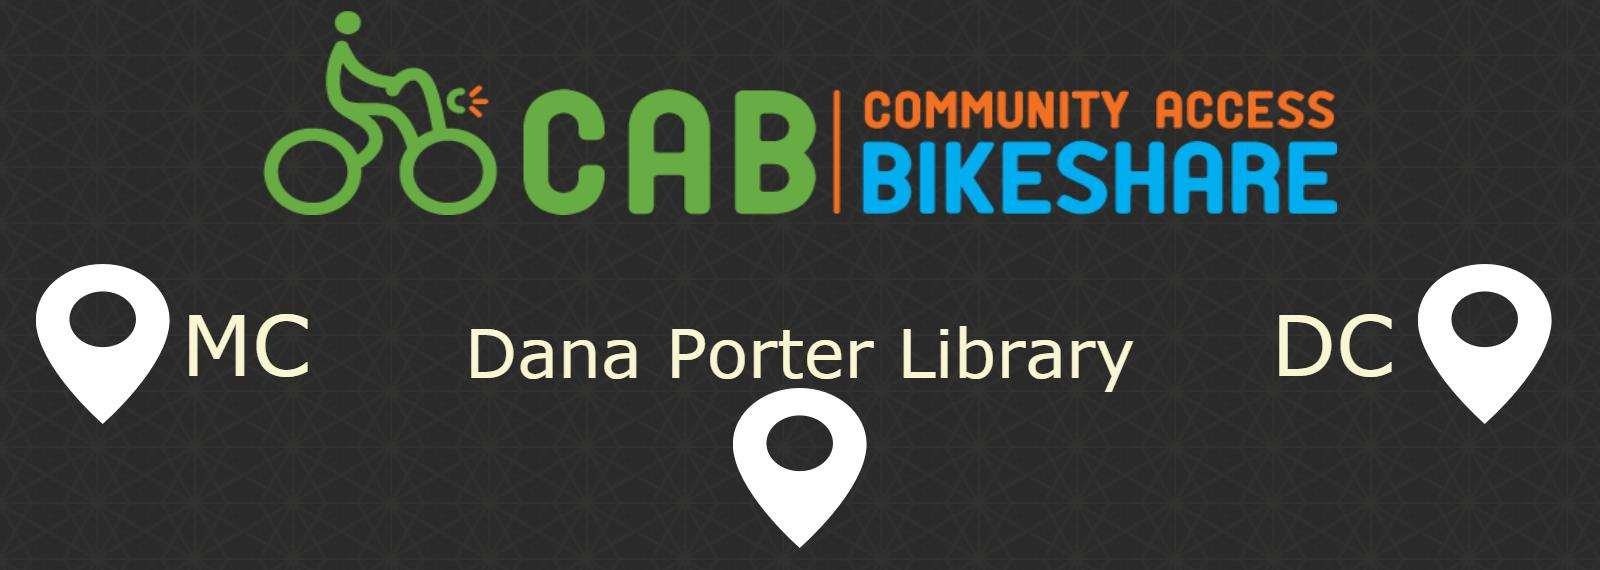 CAB - Community Access Bikeshare with three locations Math & Computers, Dana Porter Library, and Davis Centre